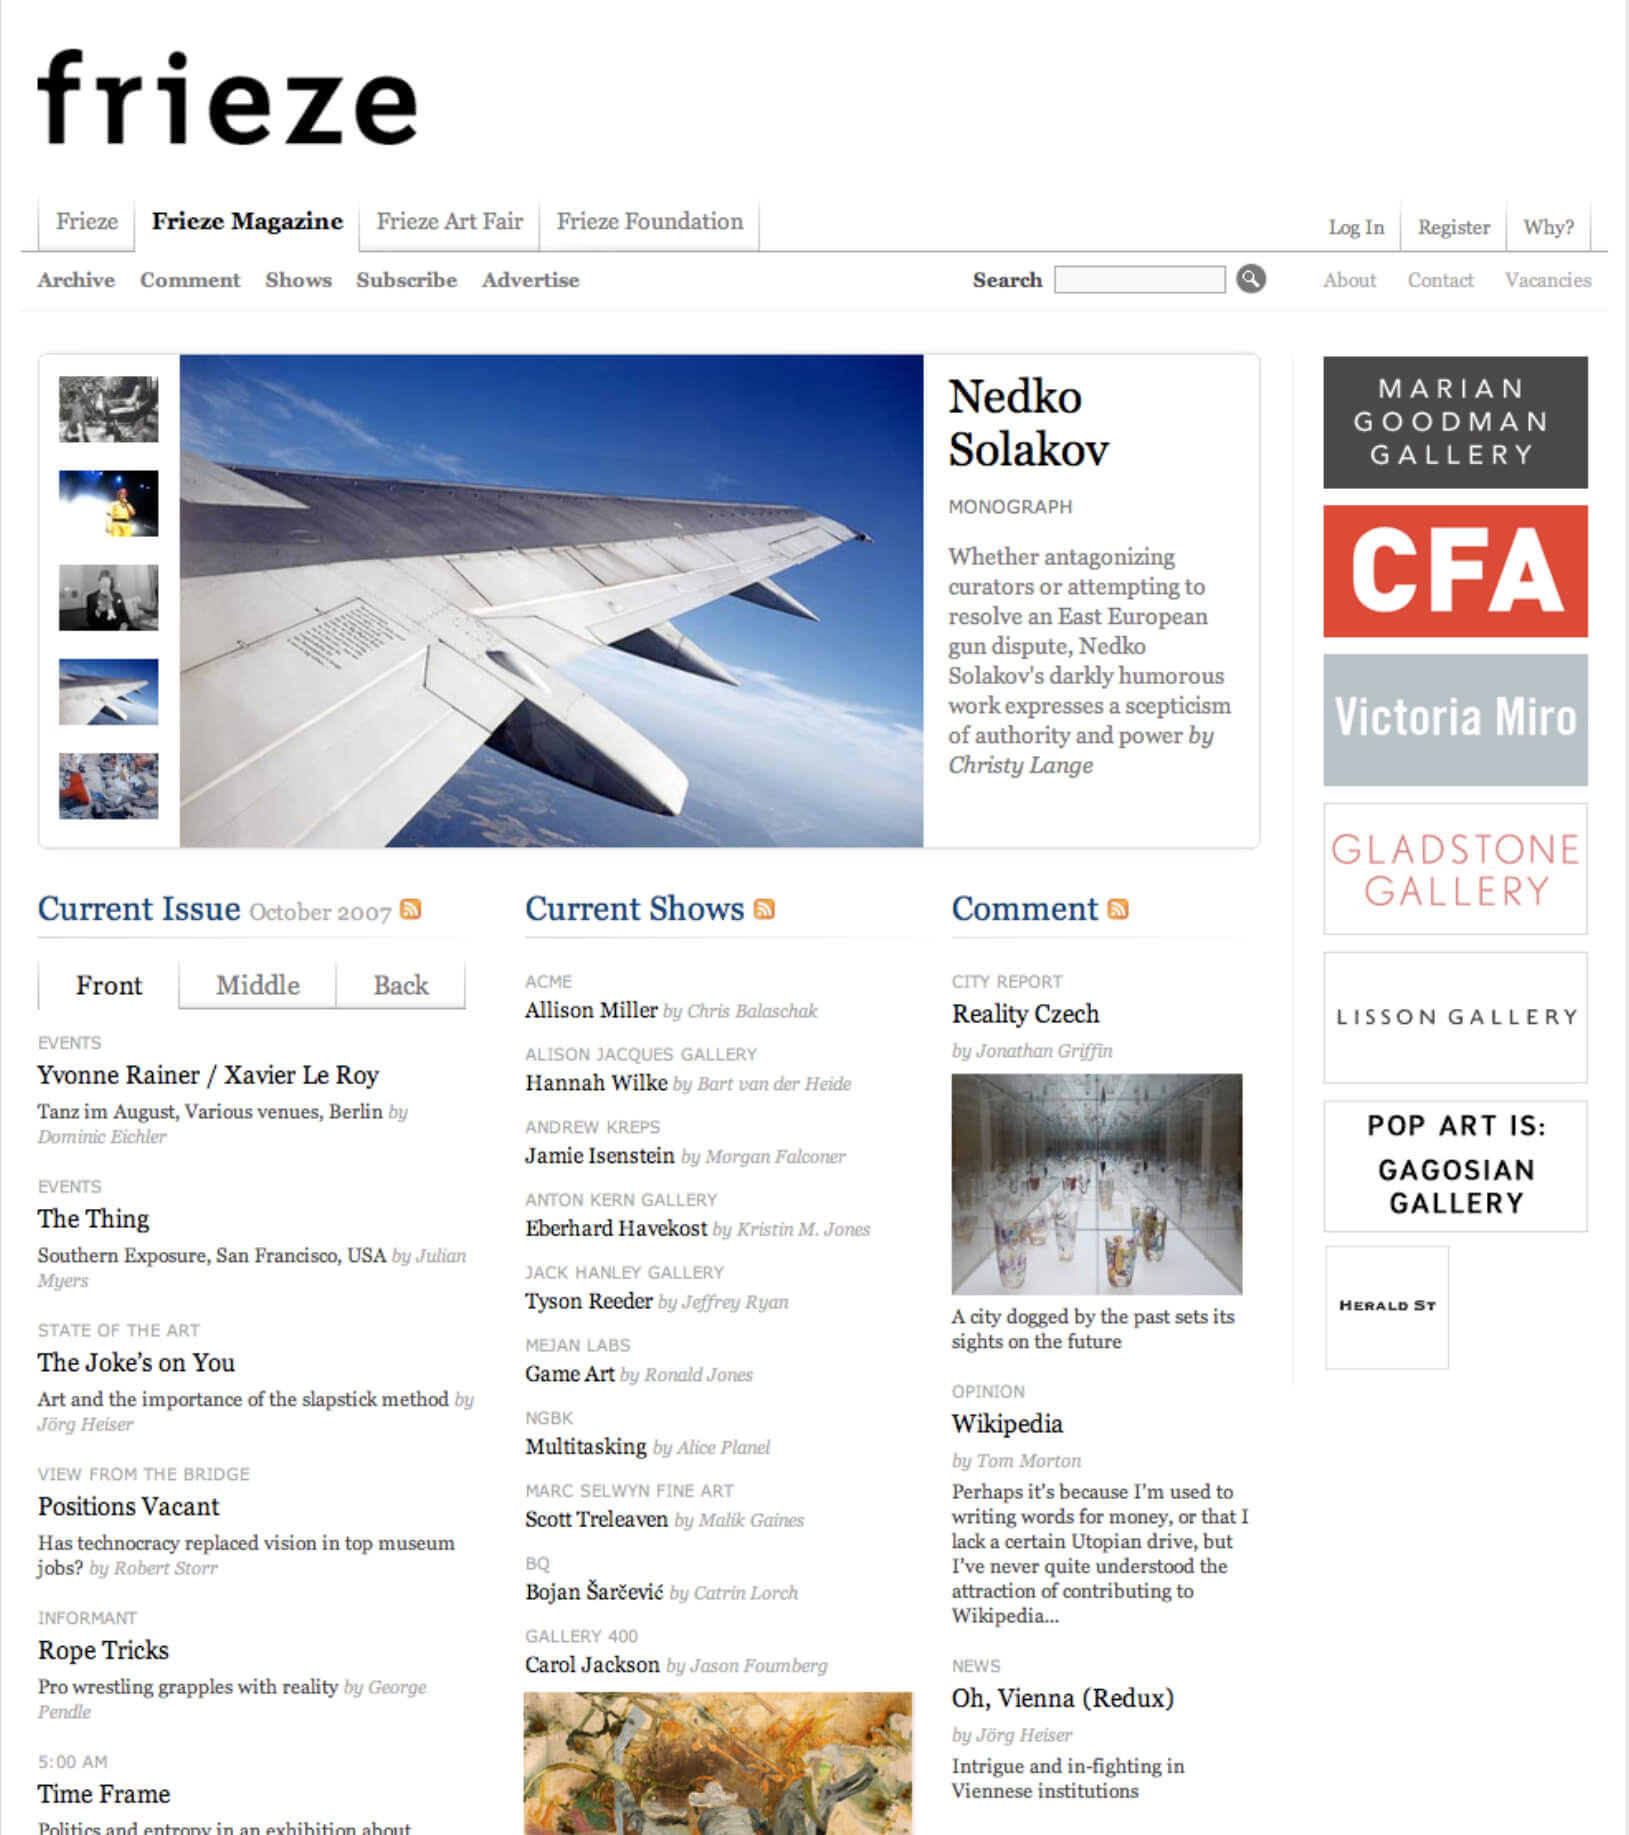 The relaunched Frieze magazine